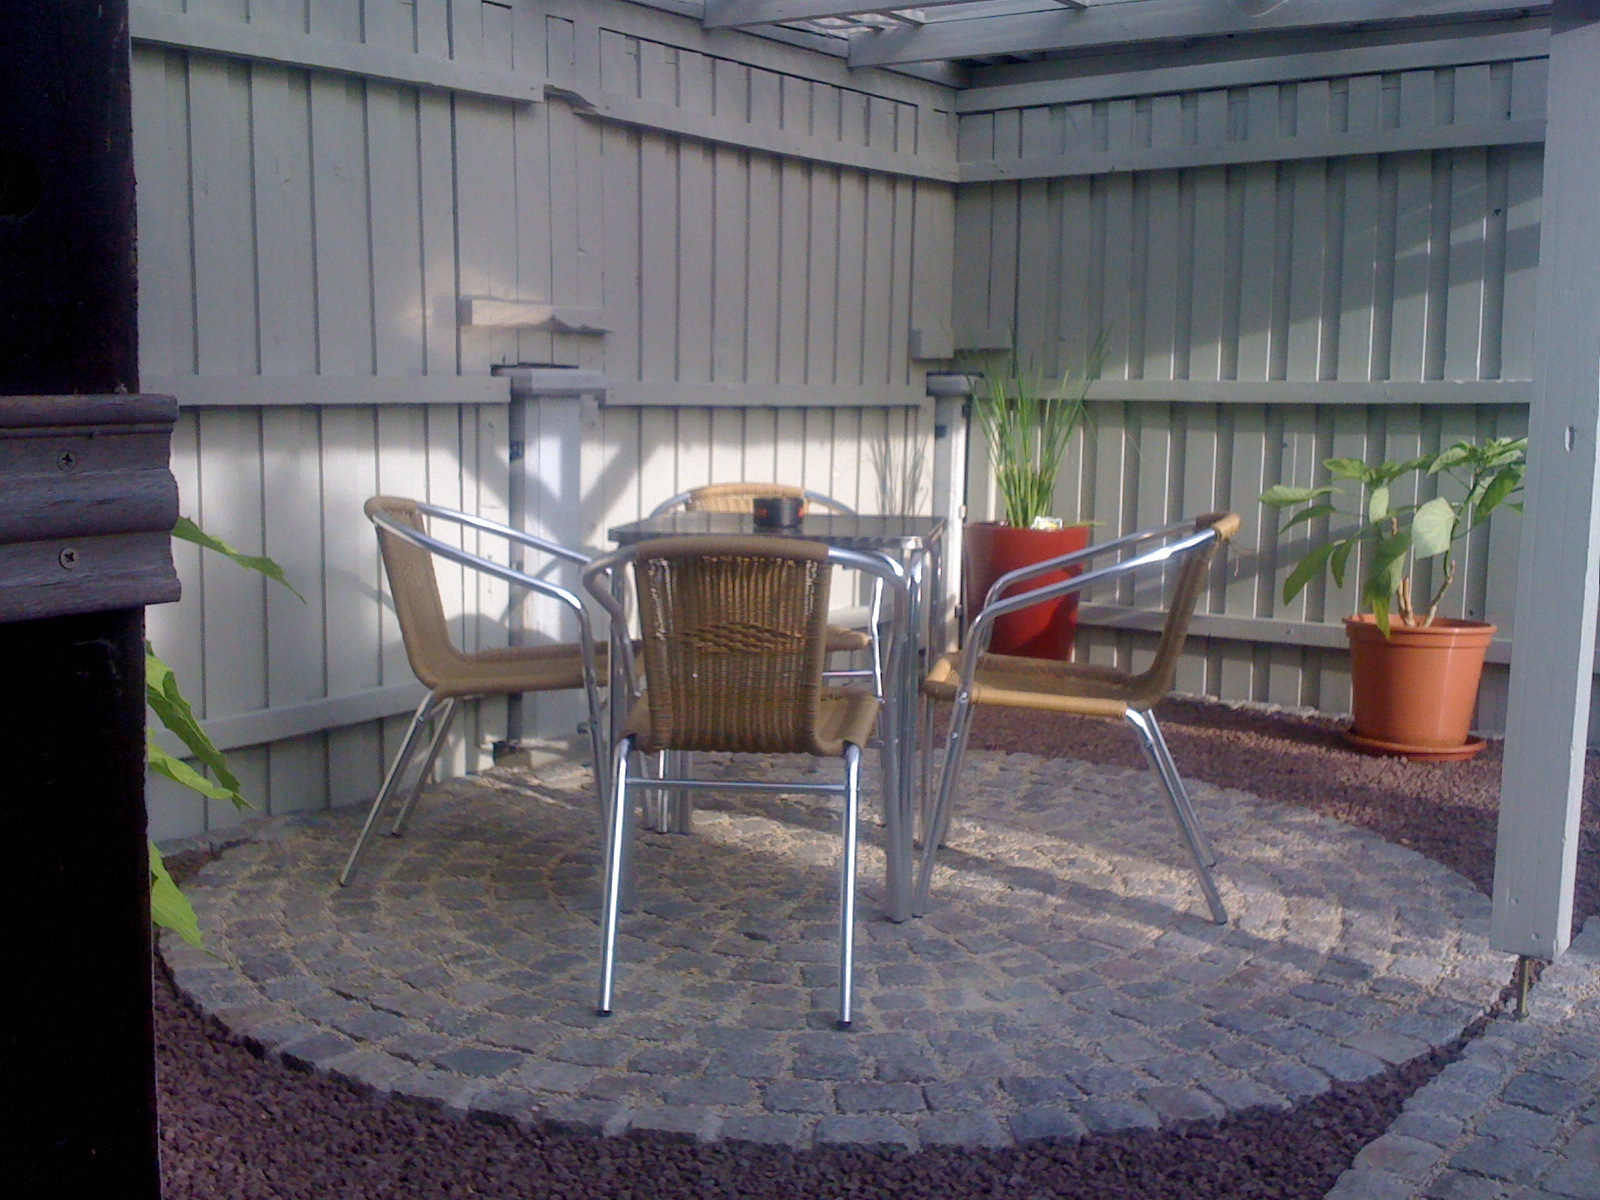 images/stories/terrasse.jpg